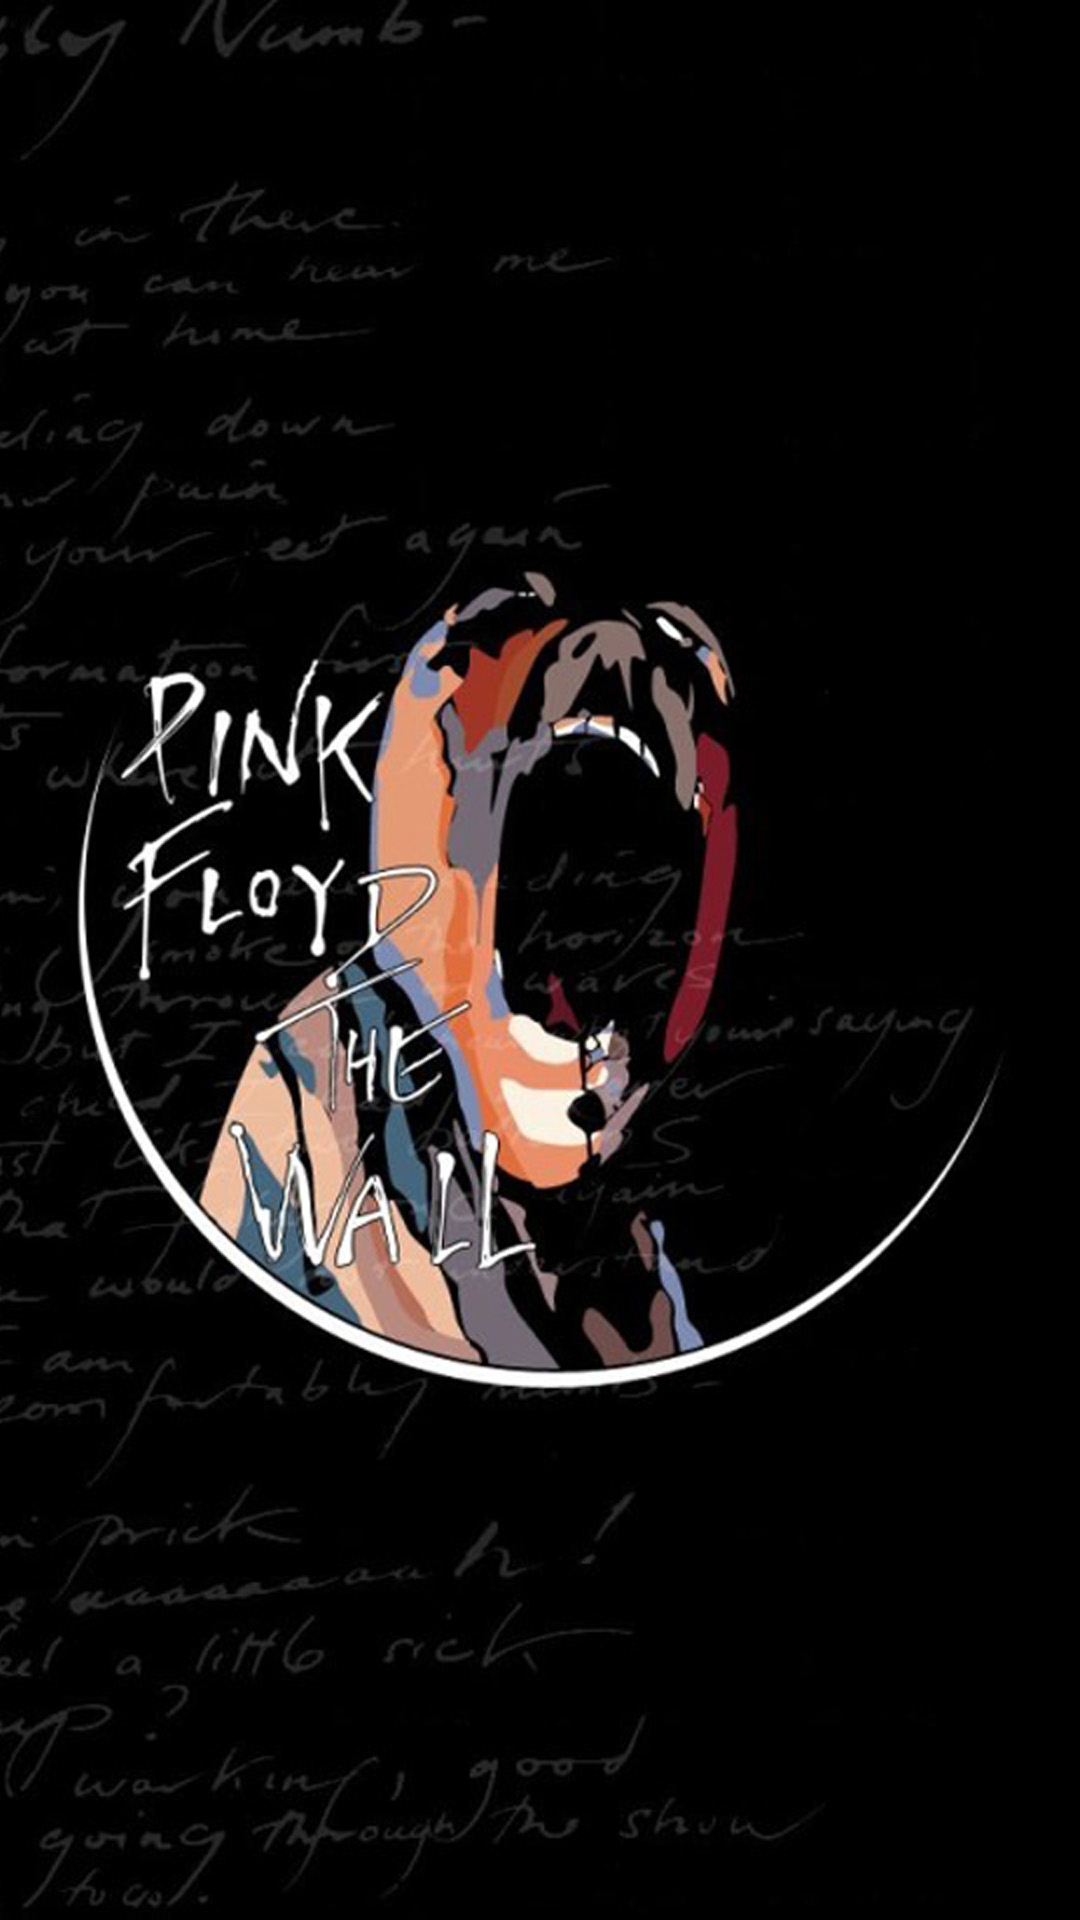 pink floyd wallpaper iphone 6 wallpaper images